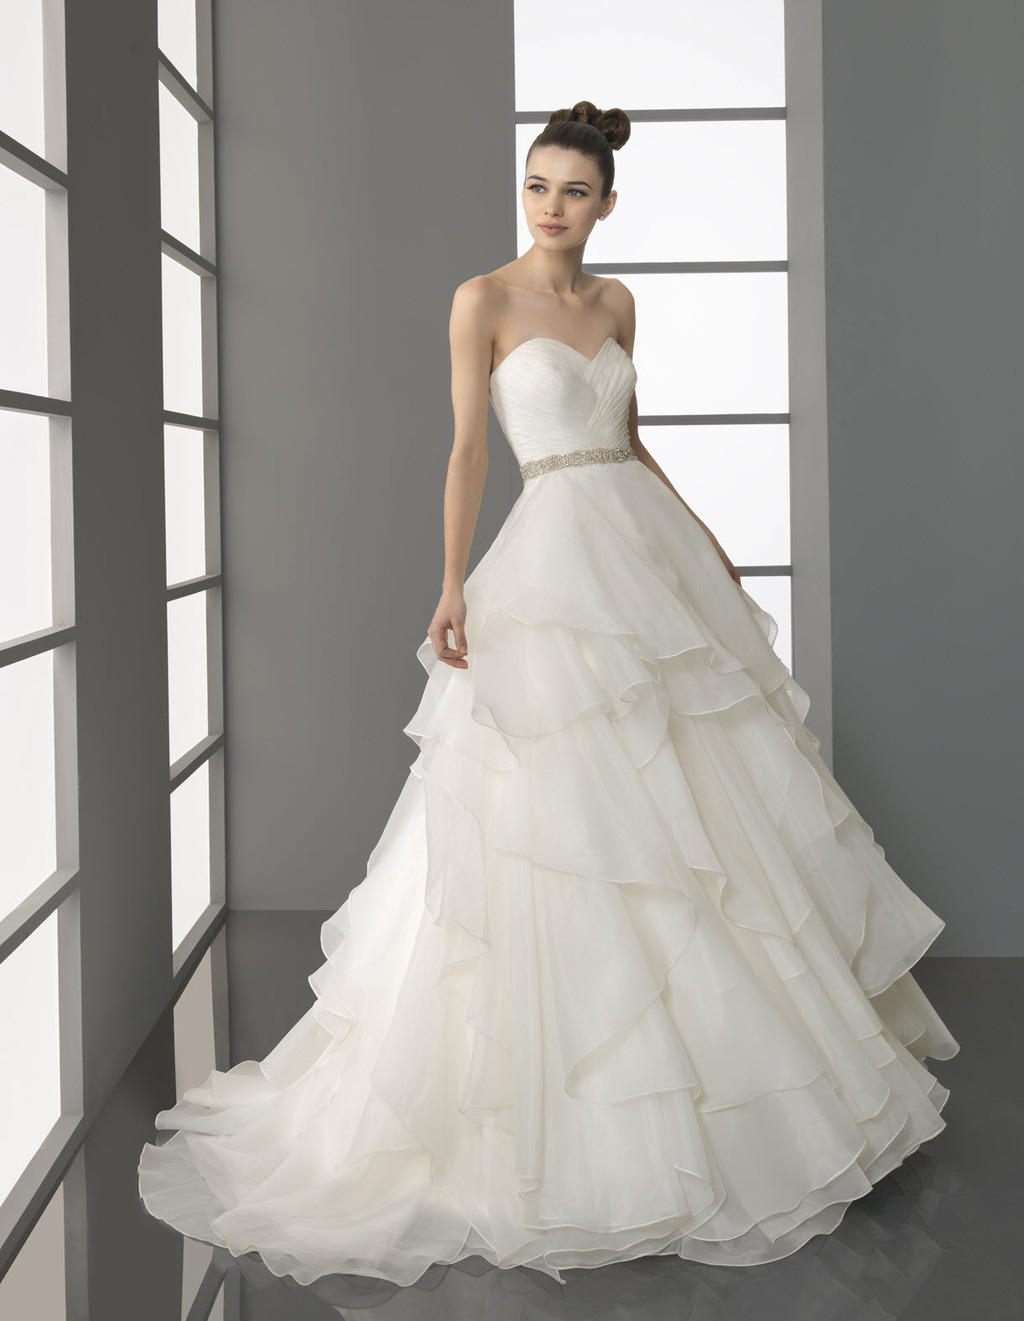 Polanco-wedding-dress-spring-2012-bridal-gowns-aire-barcelona-sweetheart-a-line.full